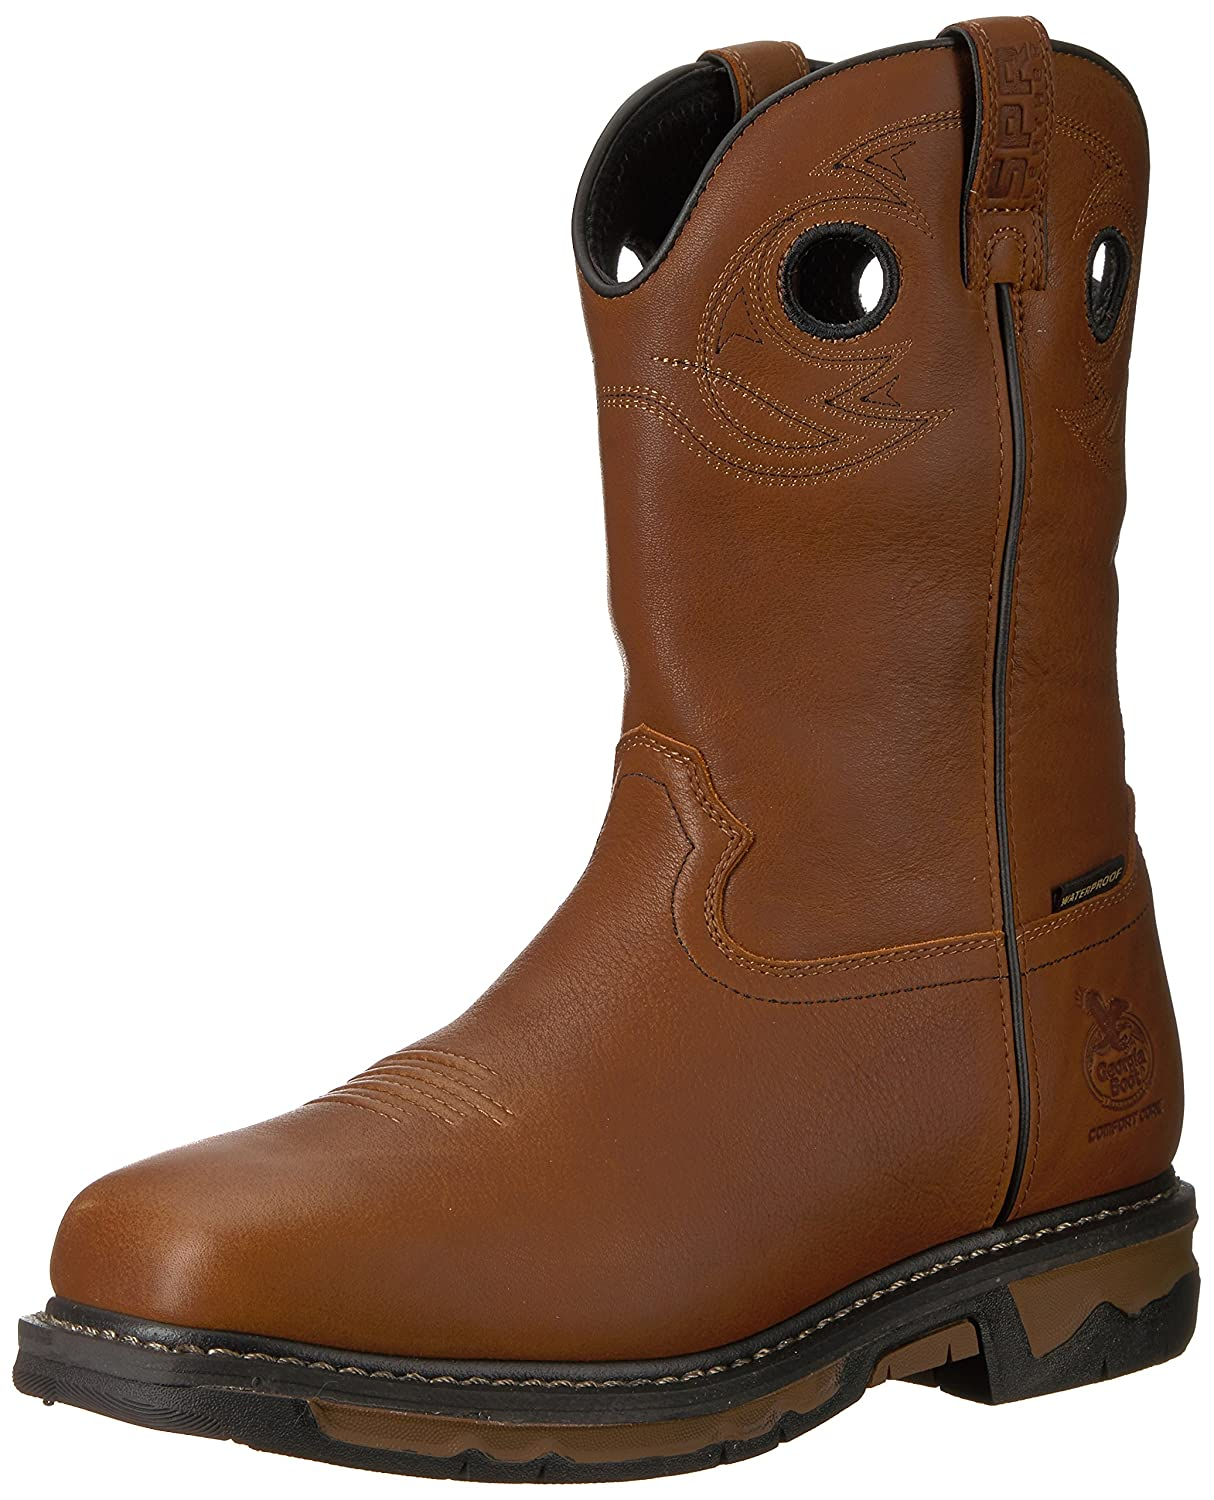 Georgia GB00160 Mid Calf Boot B071XJ4BYN 10.5 M US|Dark Brown